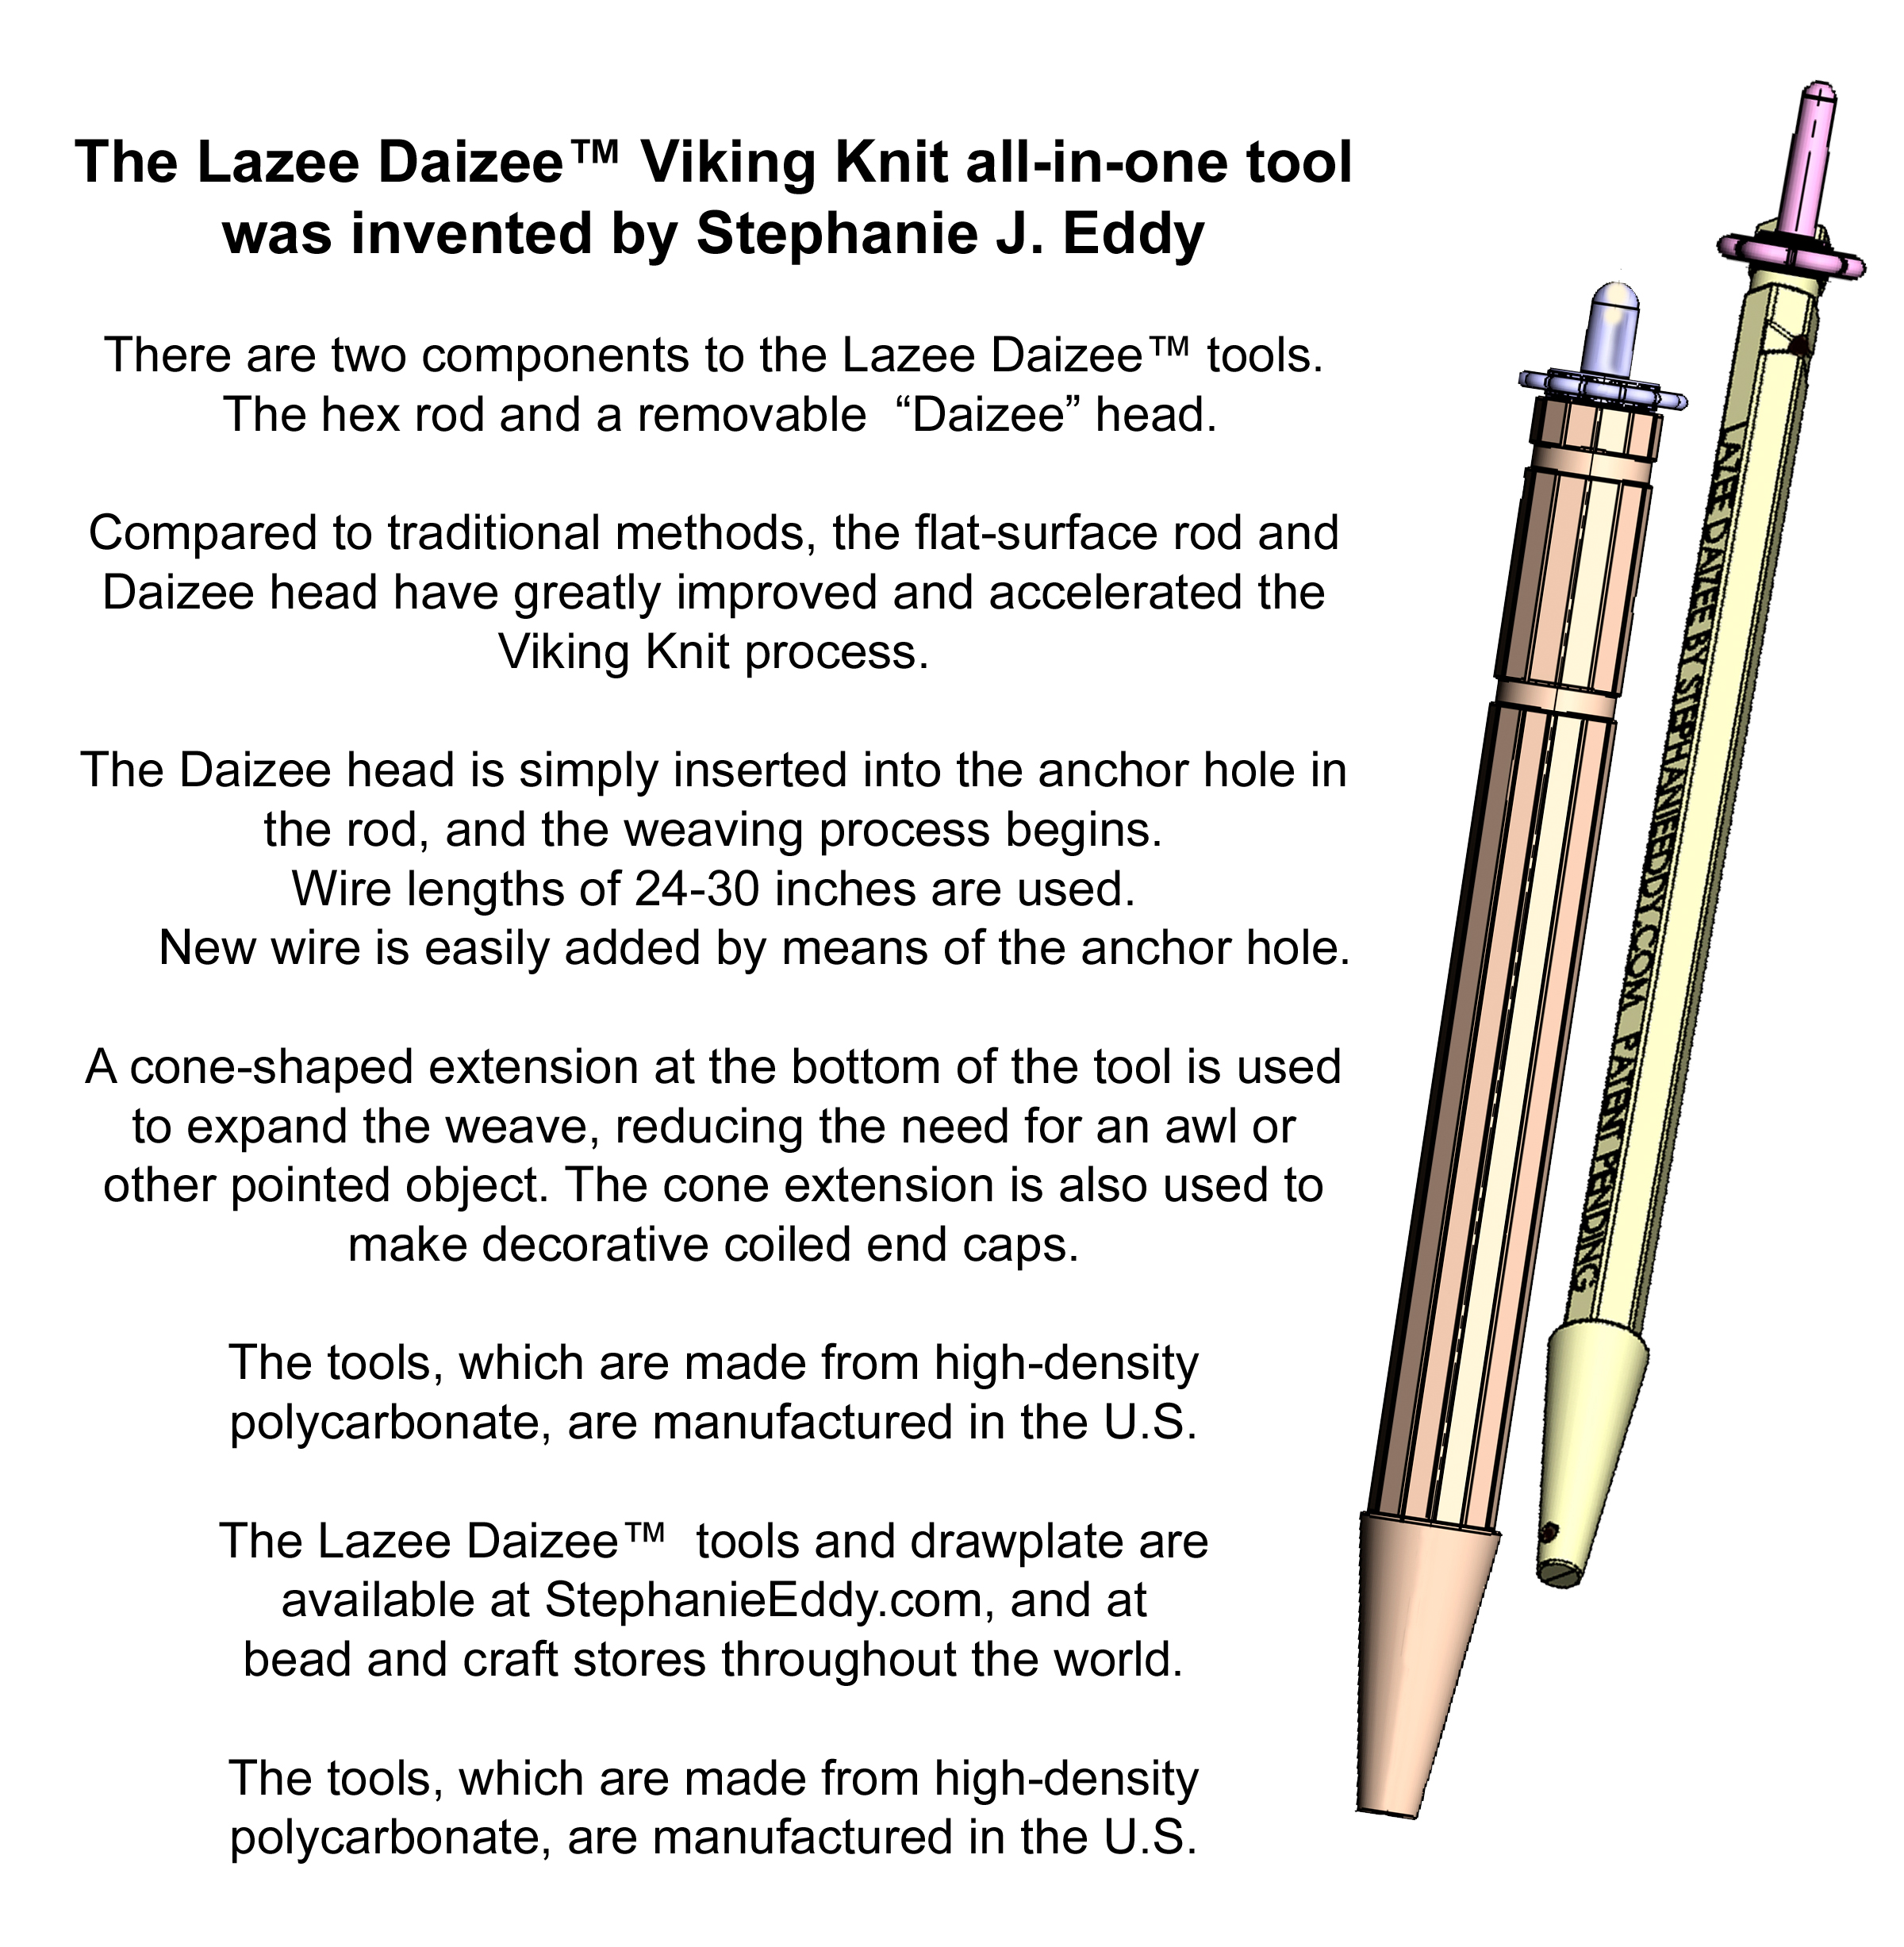 About the Lazee Daizee tools